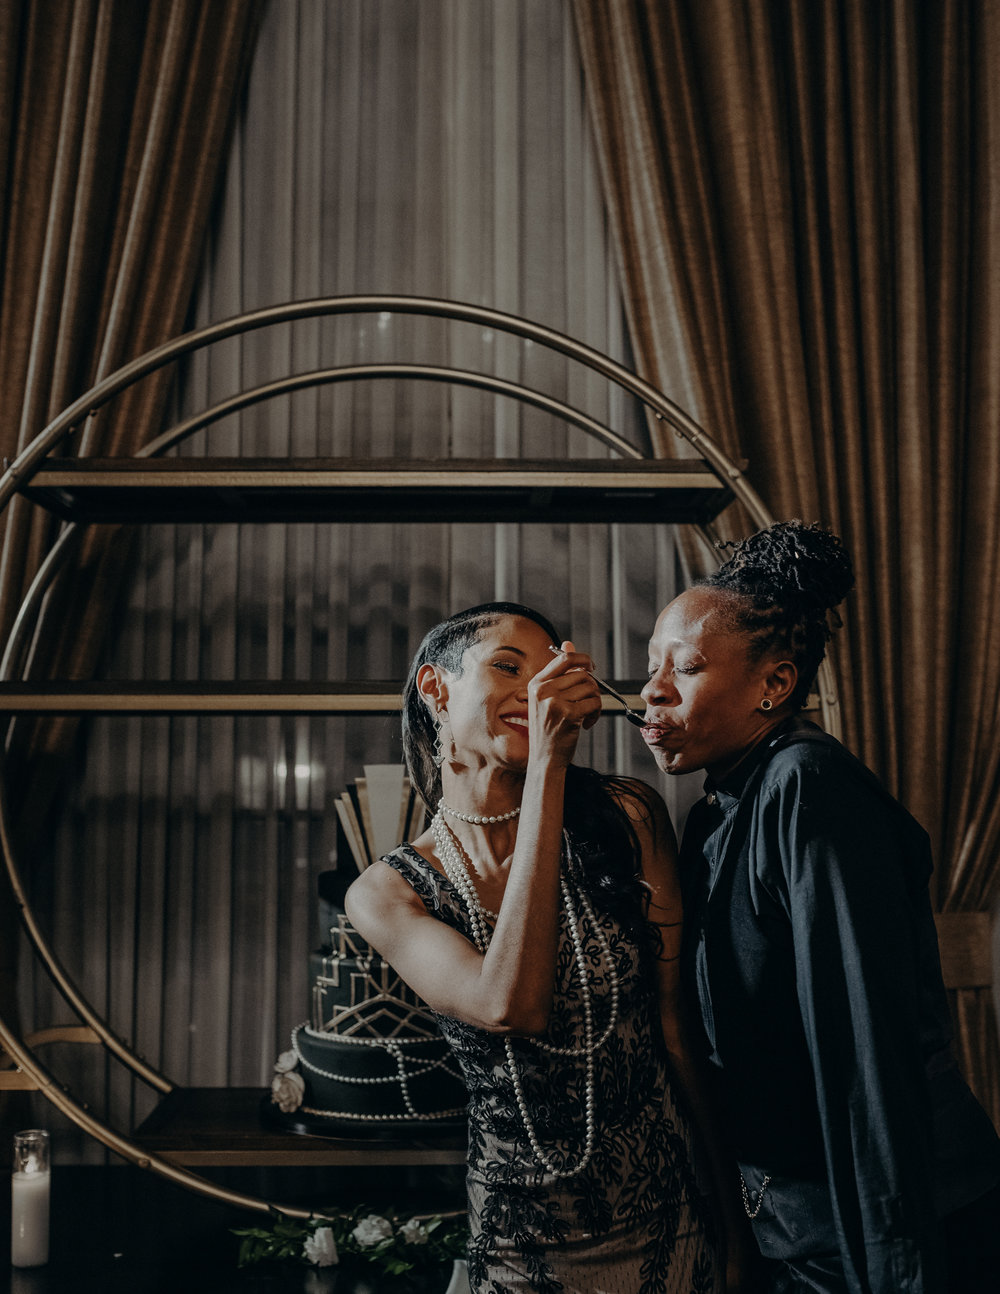 Wedding Photographer in Los Angeles - Ebell of Long Beach Wedding - LGBTQ weddings - lesbian wedding - IsaiahAndTaylor.com-127.jpg